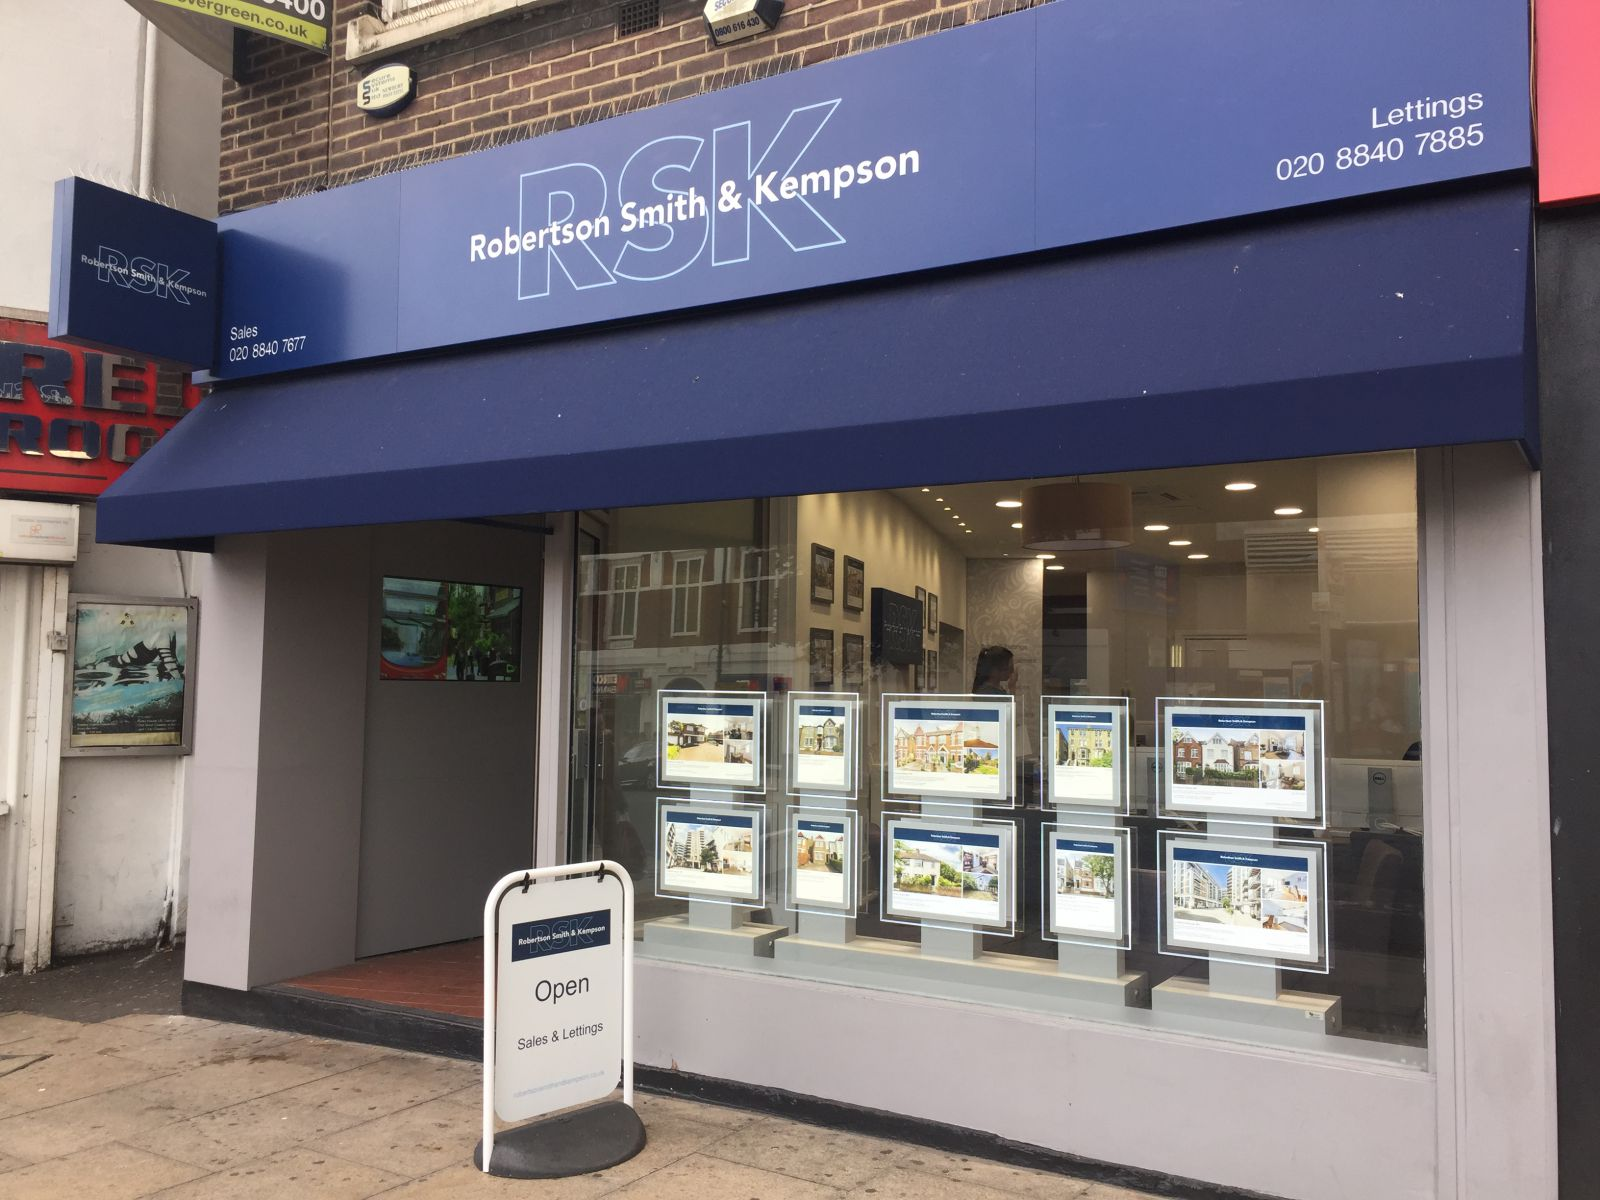 Robertson Smith & Kempson Ealing Estate Agents